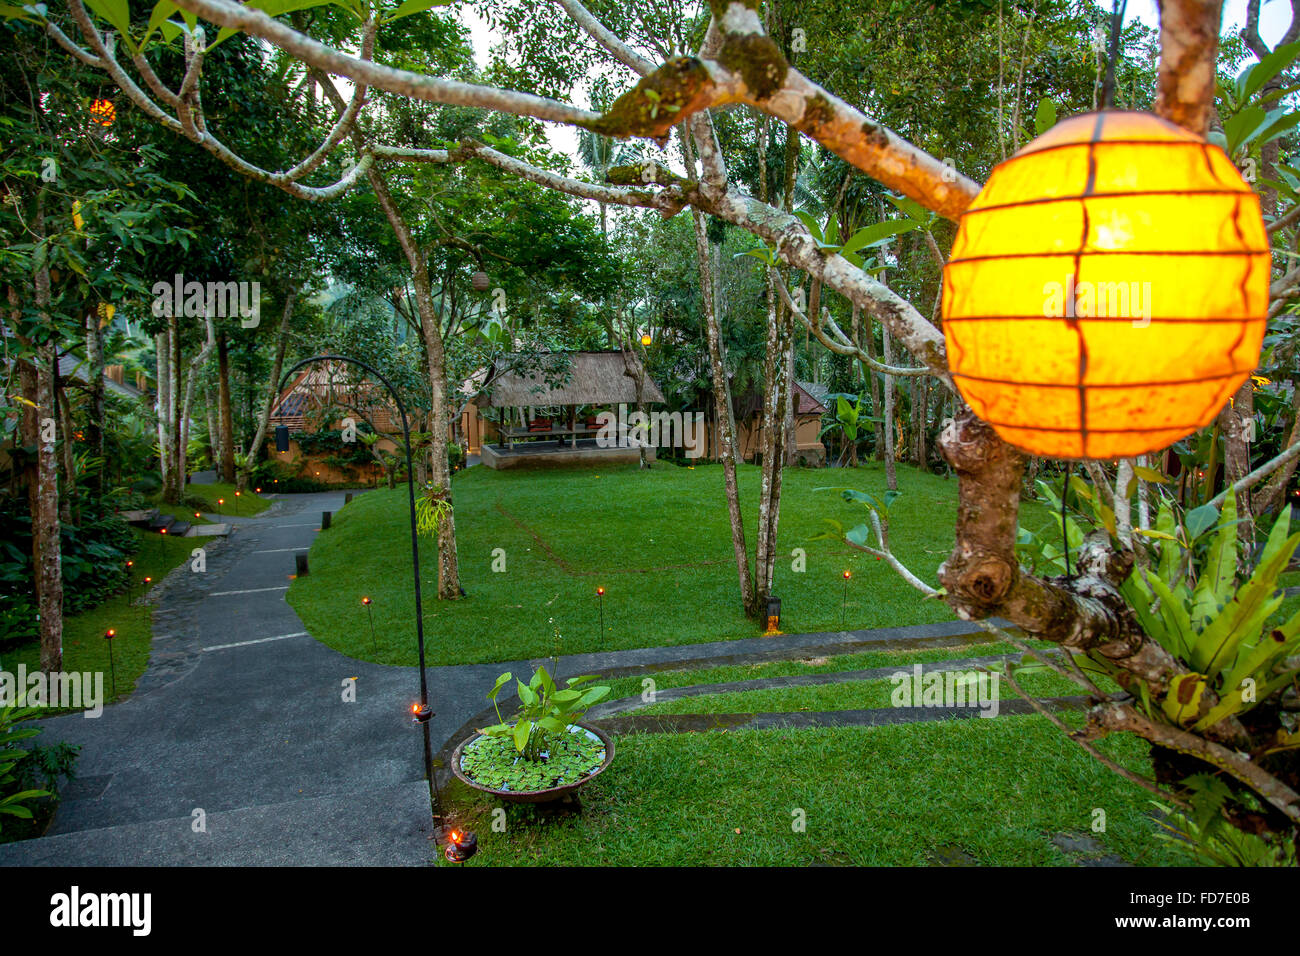 Hotel complex with a Lampignon, Garden Hotel, Ubud, Bali, Indonesia, Asia - Stock Image